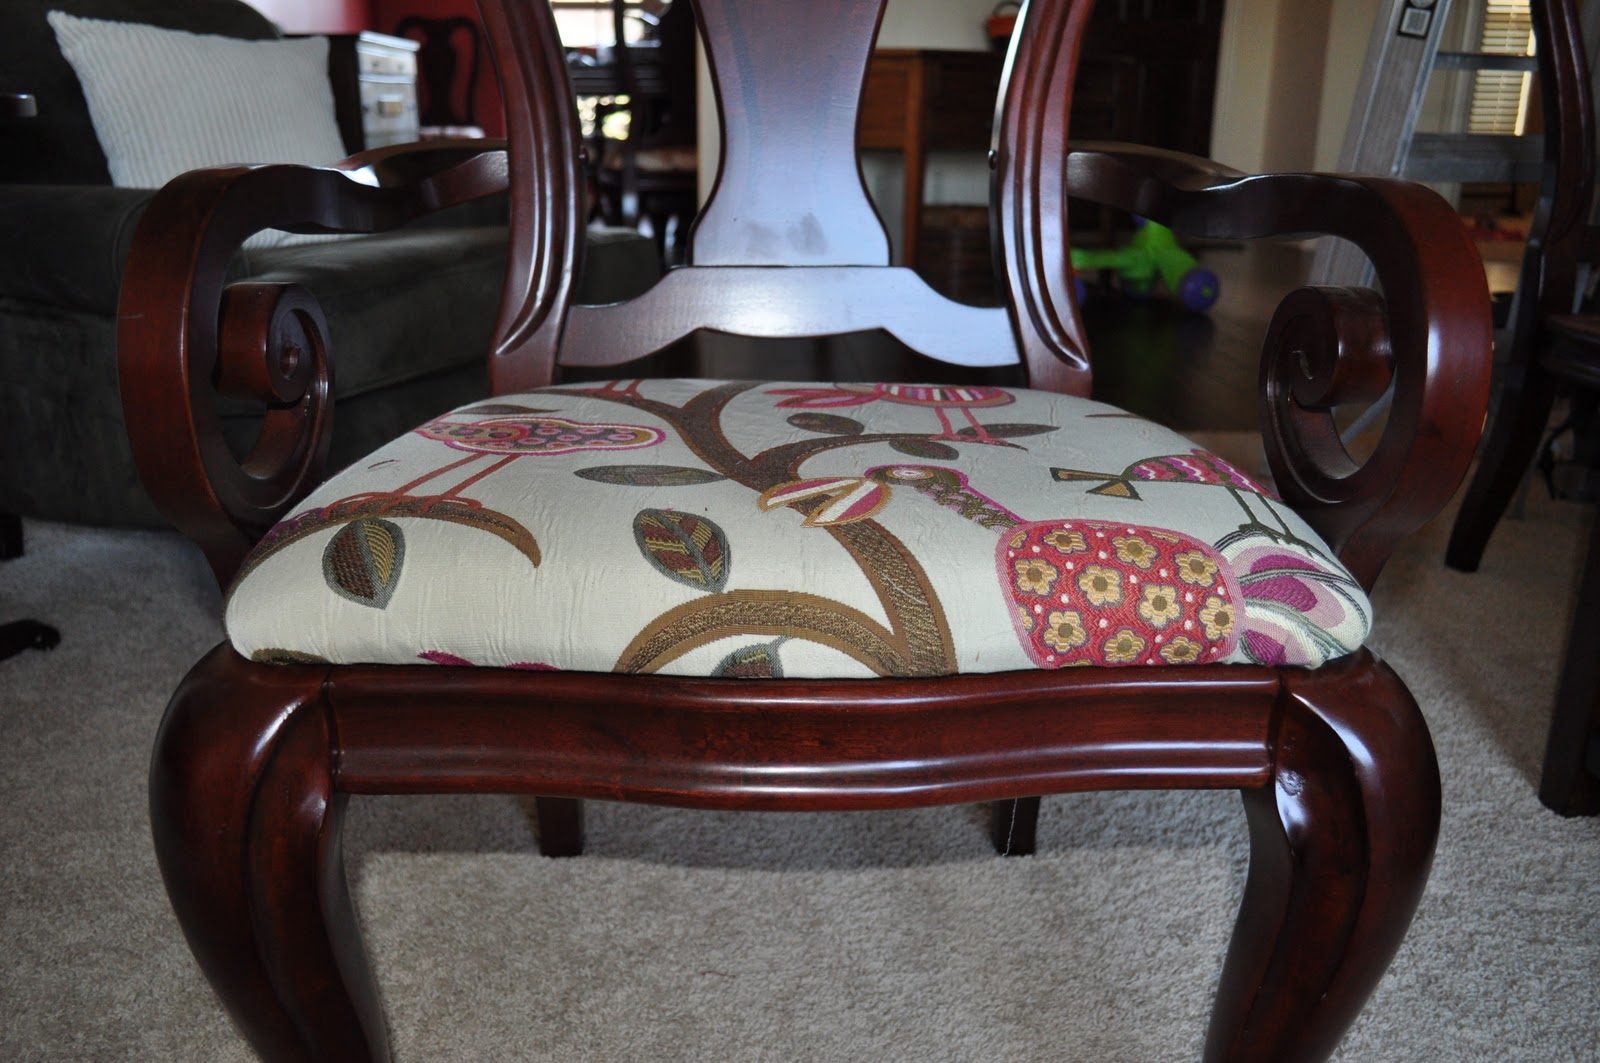 DIY: How To Reupholster A Dining Room Chair (Part 3)